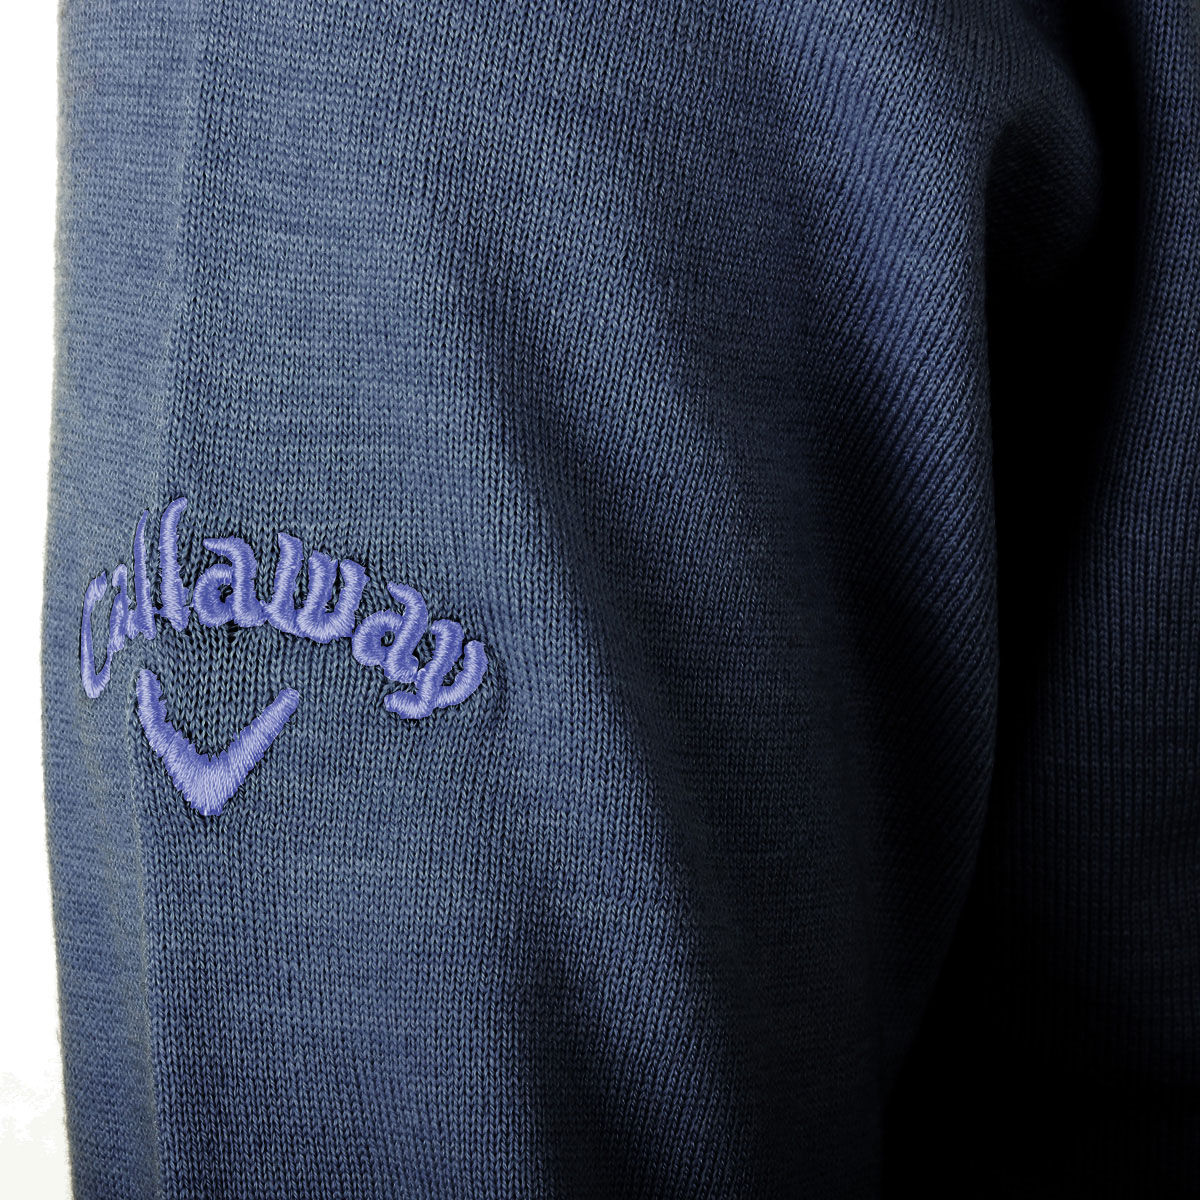 Callaway-Golf-Mens-Merino-1-4-Zip-Sweater-Wool-Pullover-Therm-Jumper-60-OFF-RRP thumbnail 27